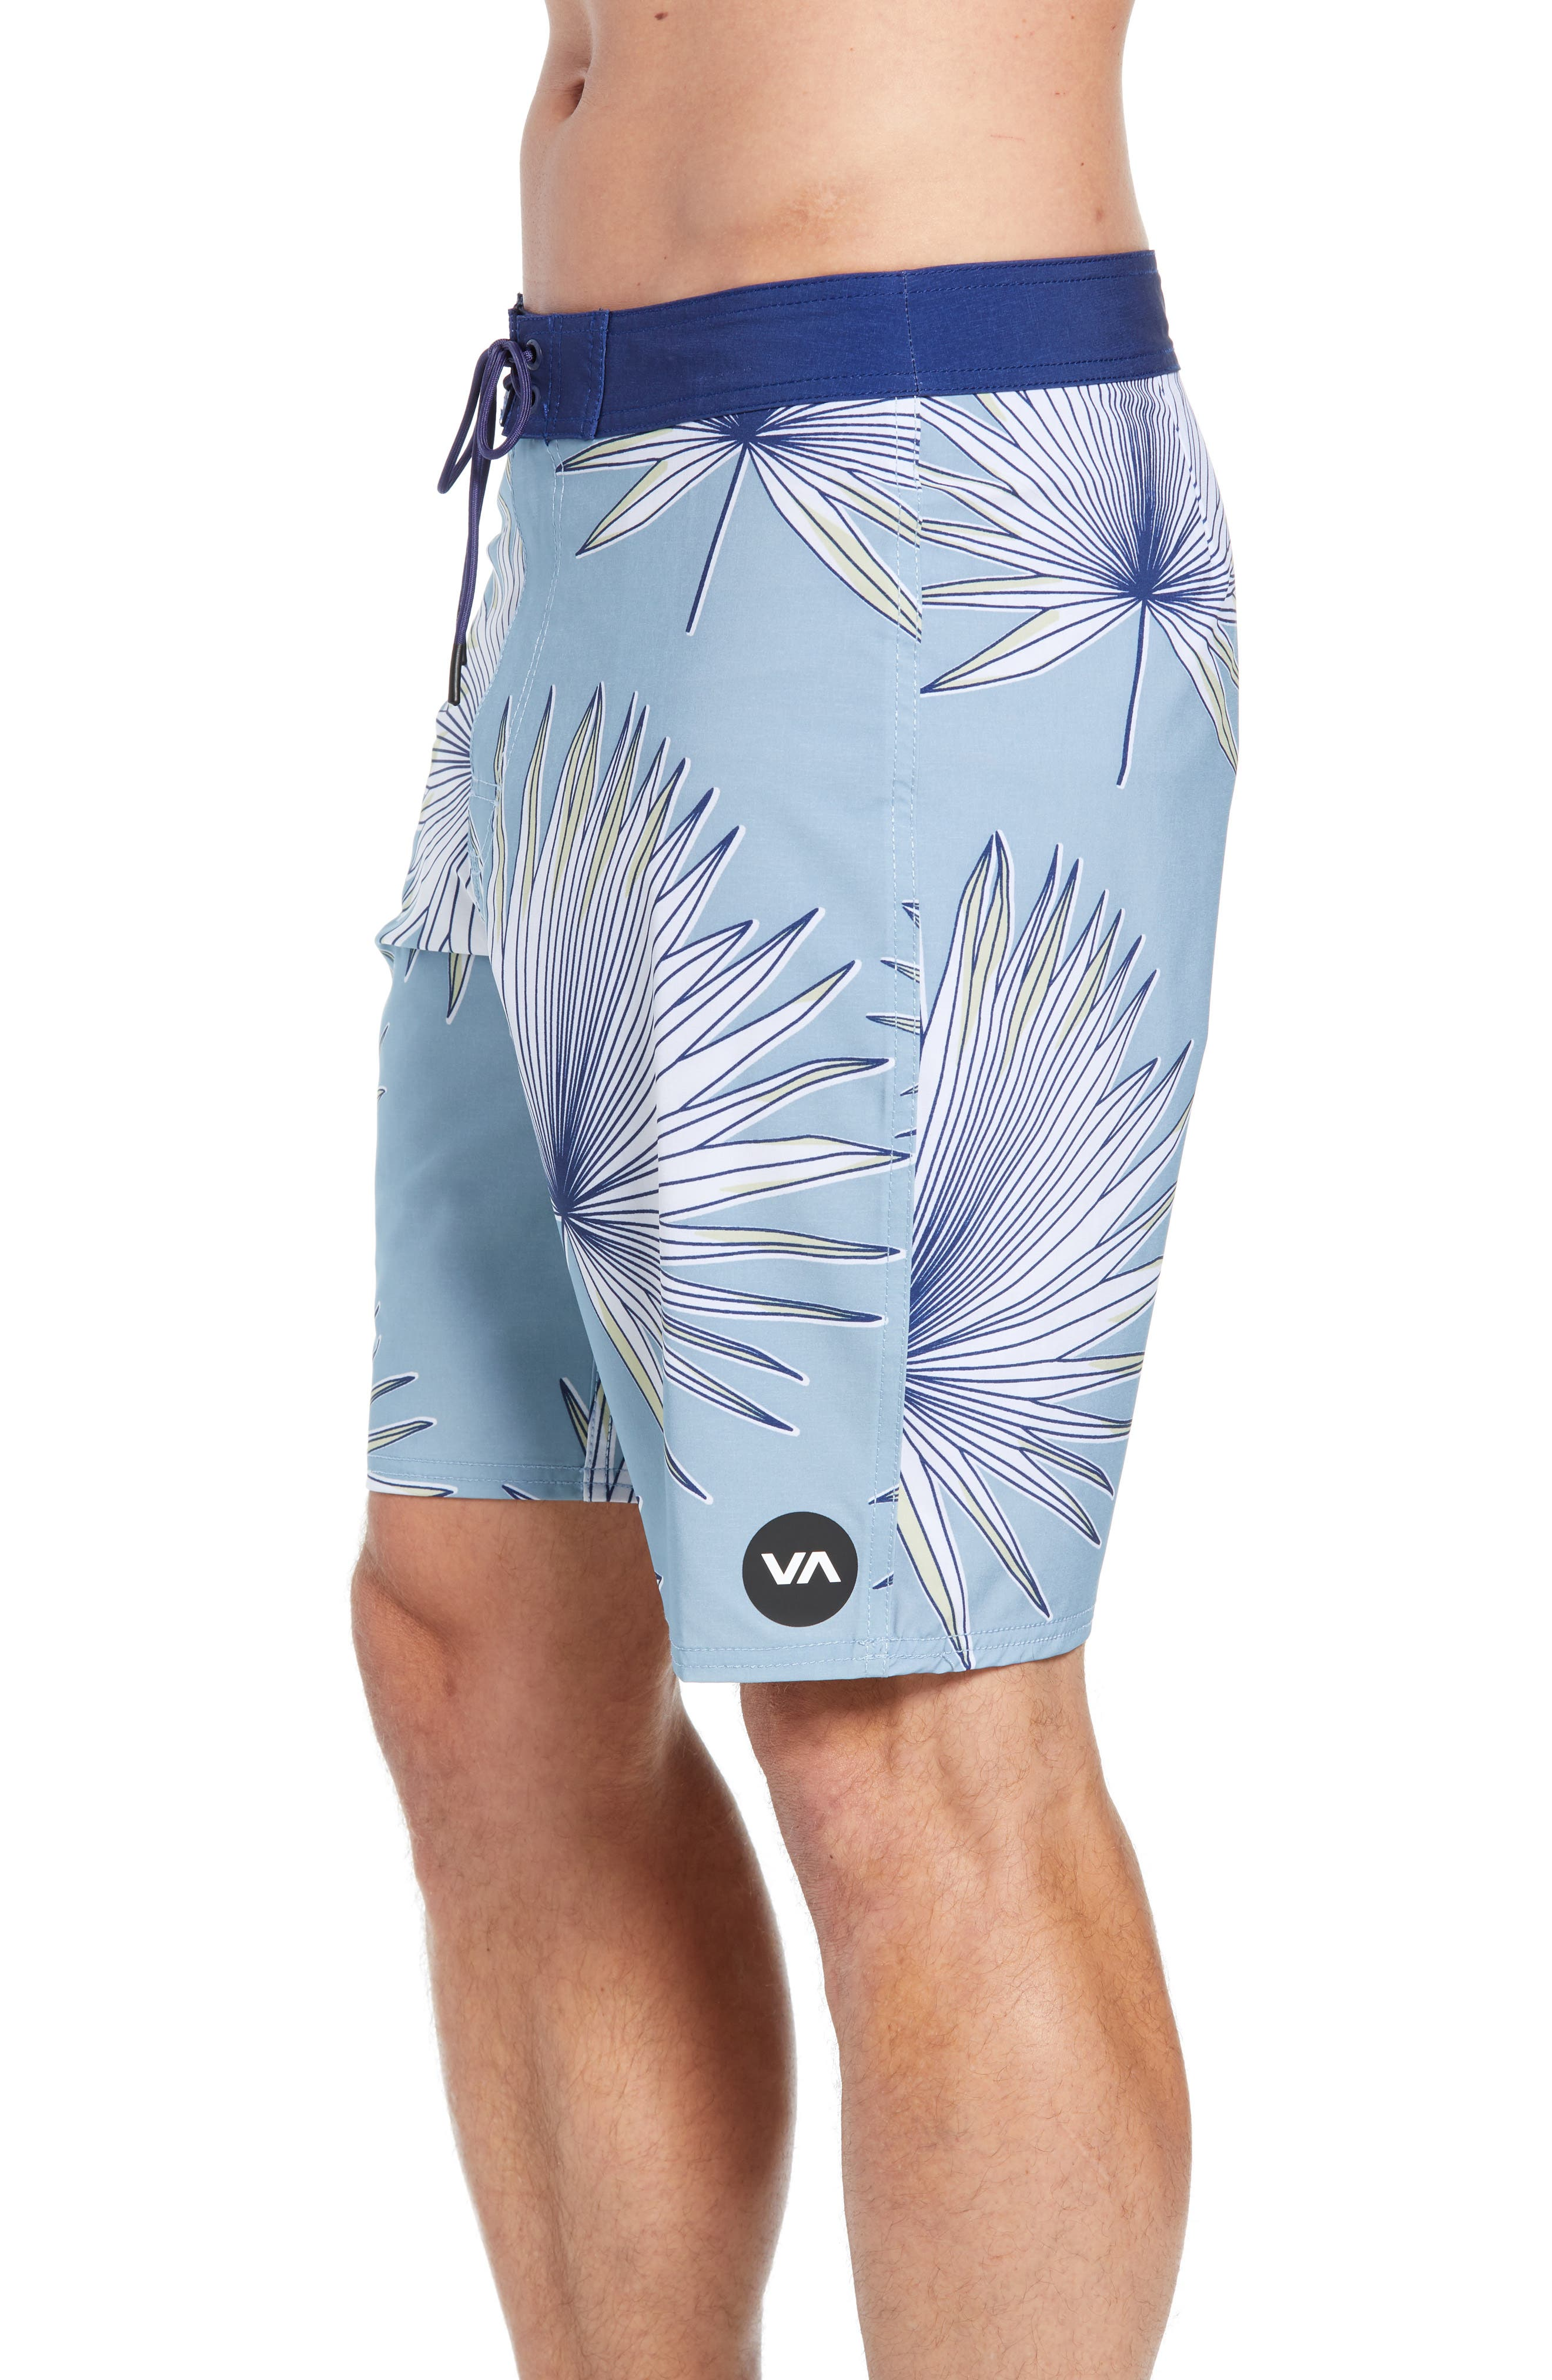 Varca Board Shorts,                             Alternate thumbnail 4, color,                             DUSTY BLUE